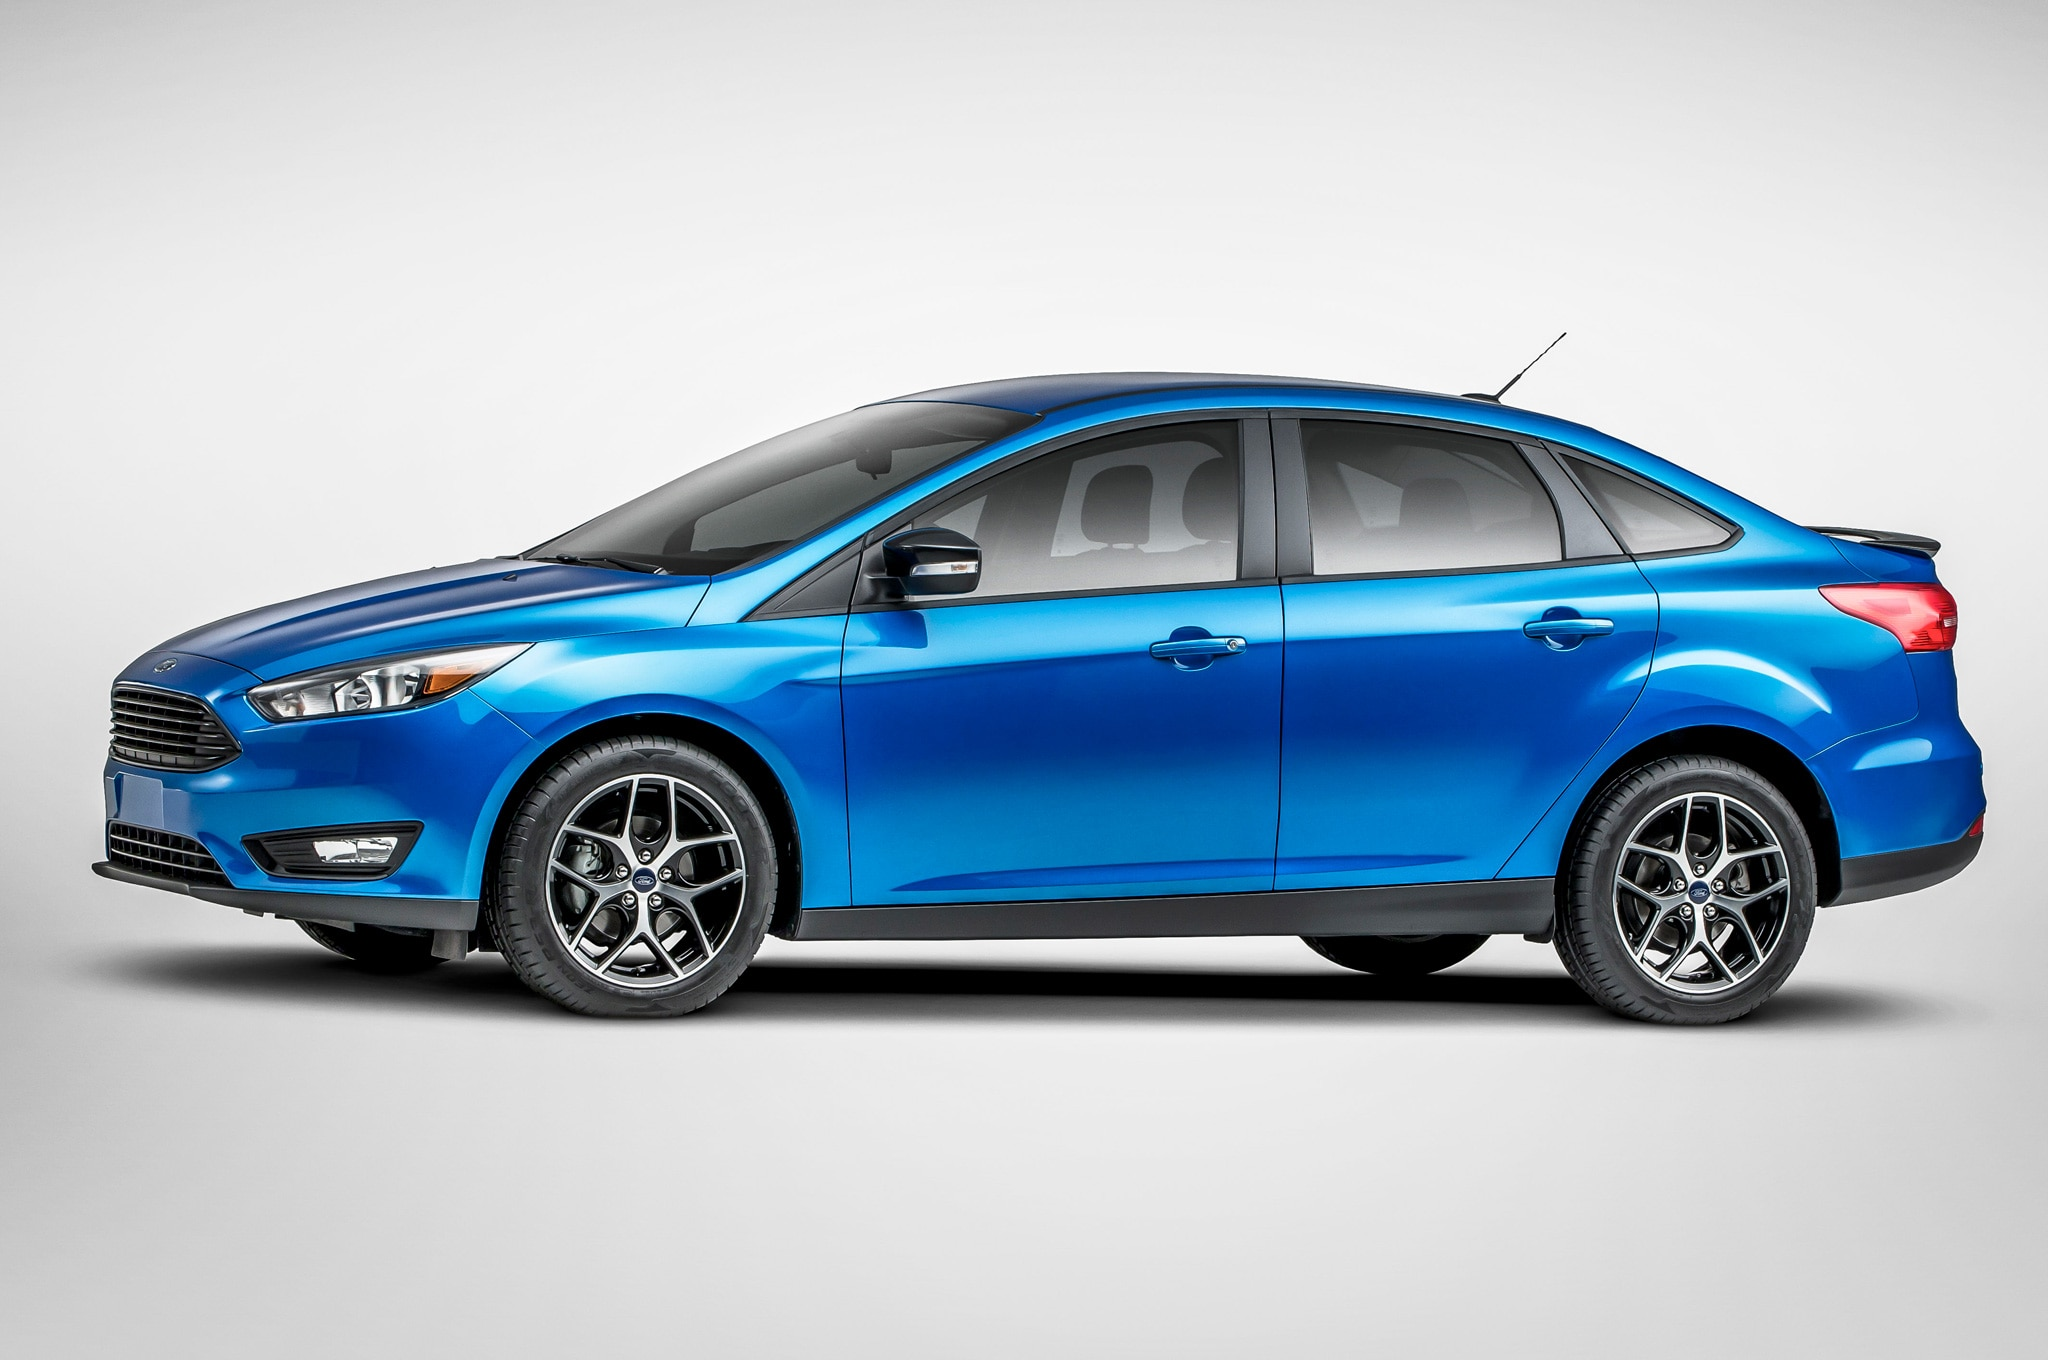 65|68 & 2015 Ford Focus Facelift 1.0-liter Version Premier at New York markmcfarlin.com